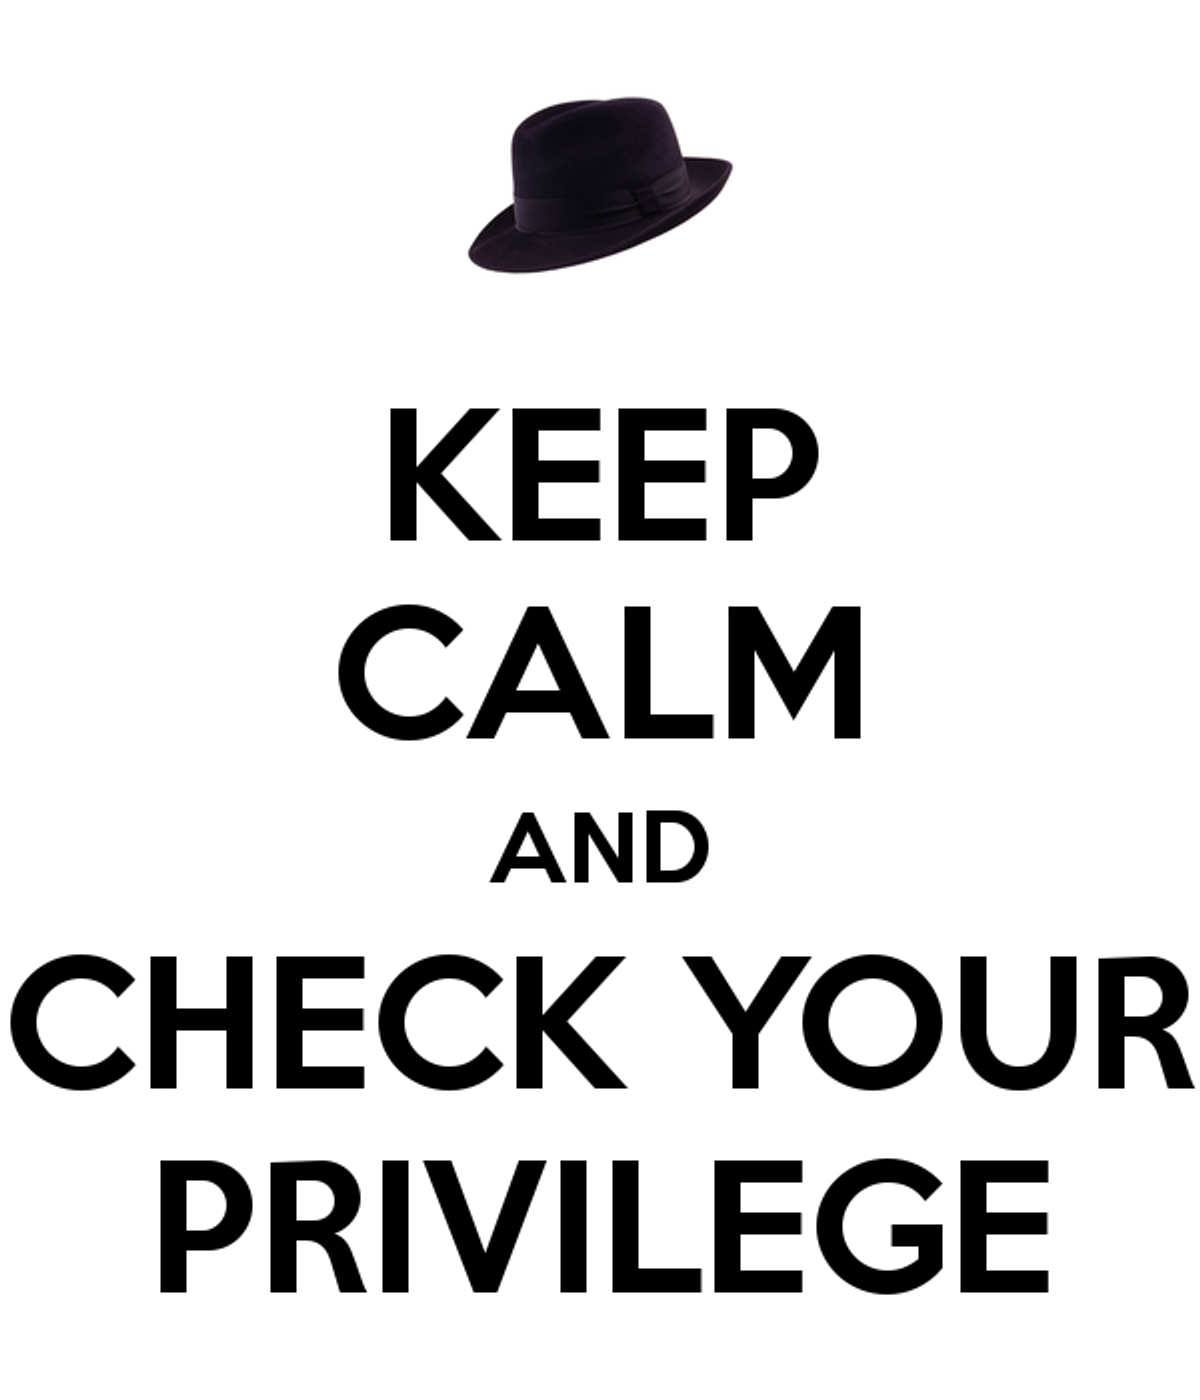 What About Black Privilege?